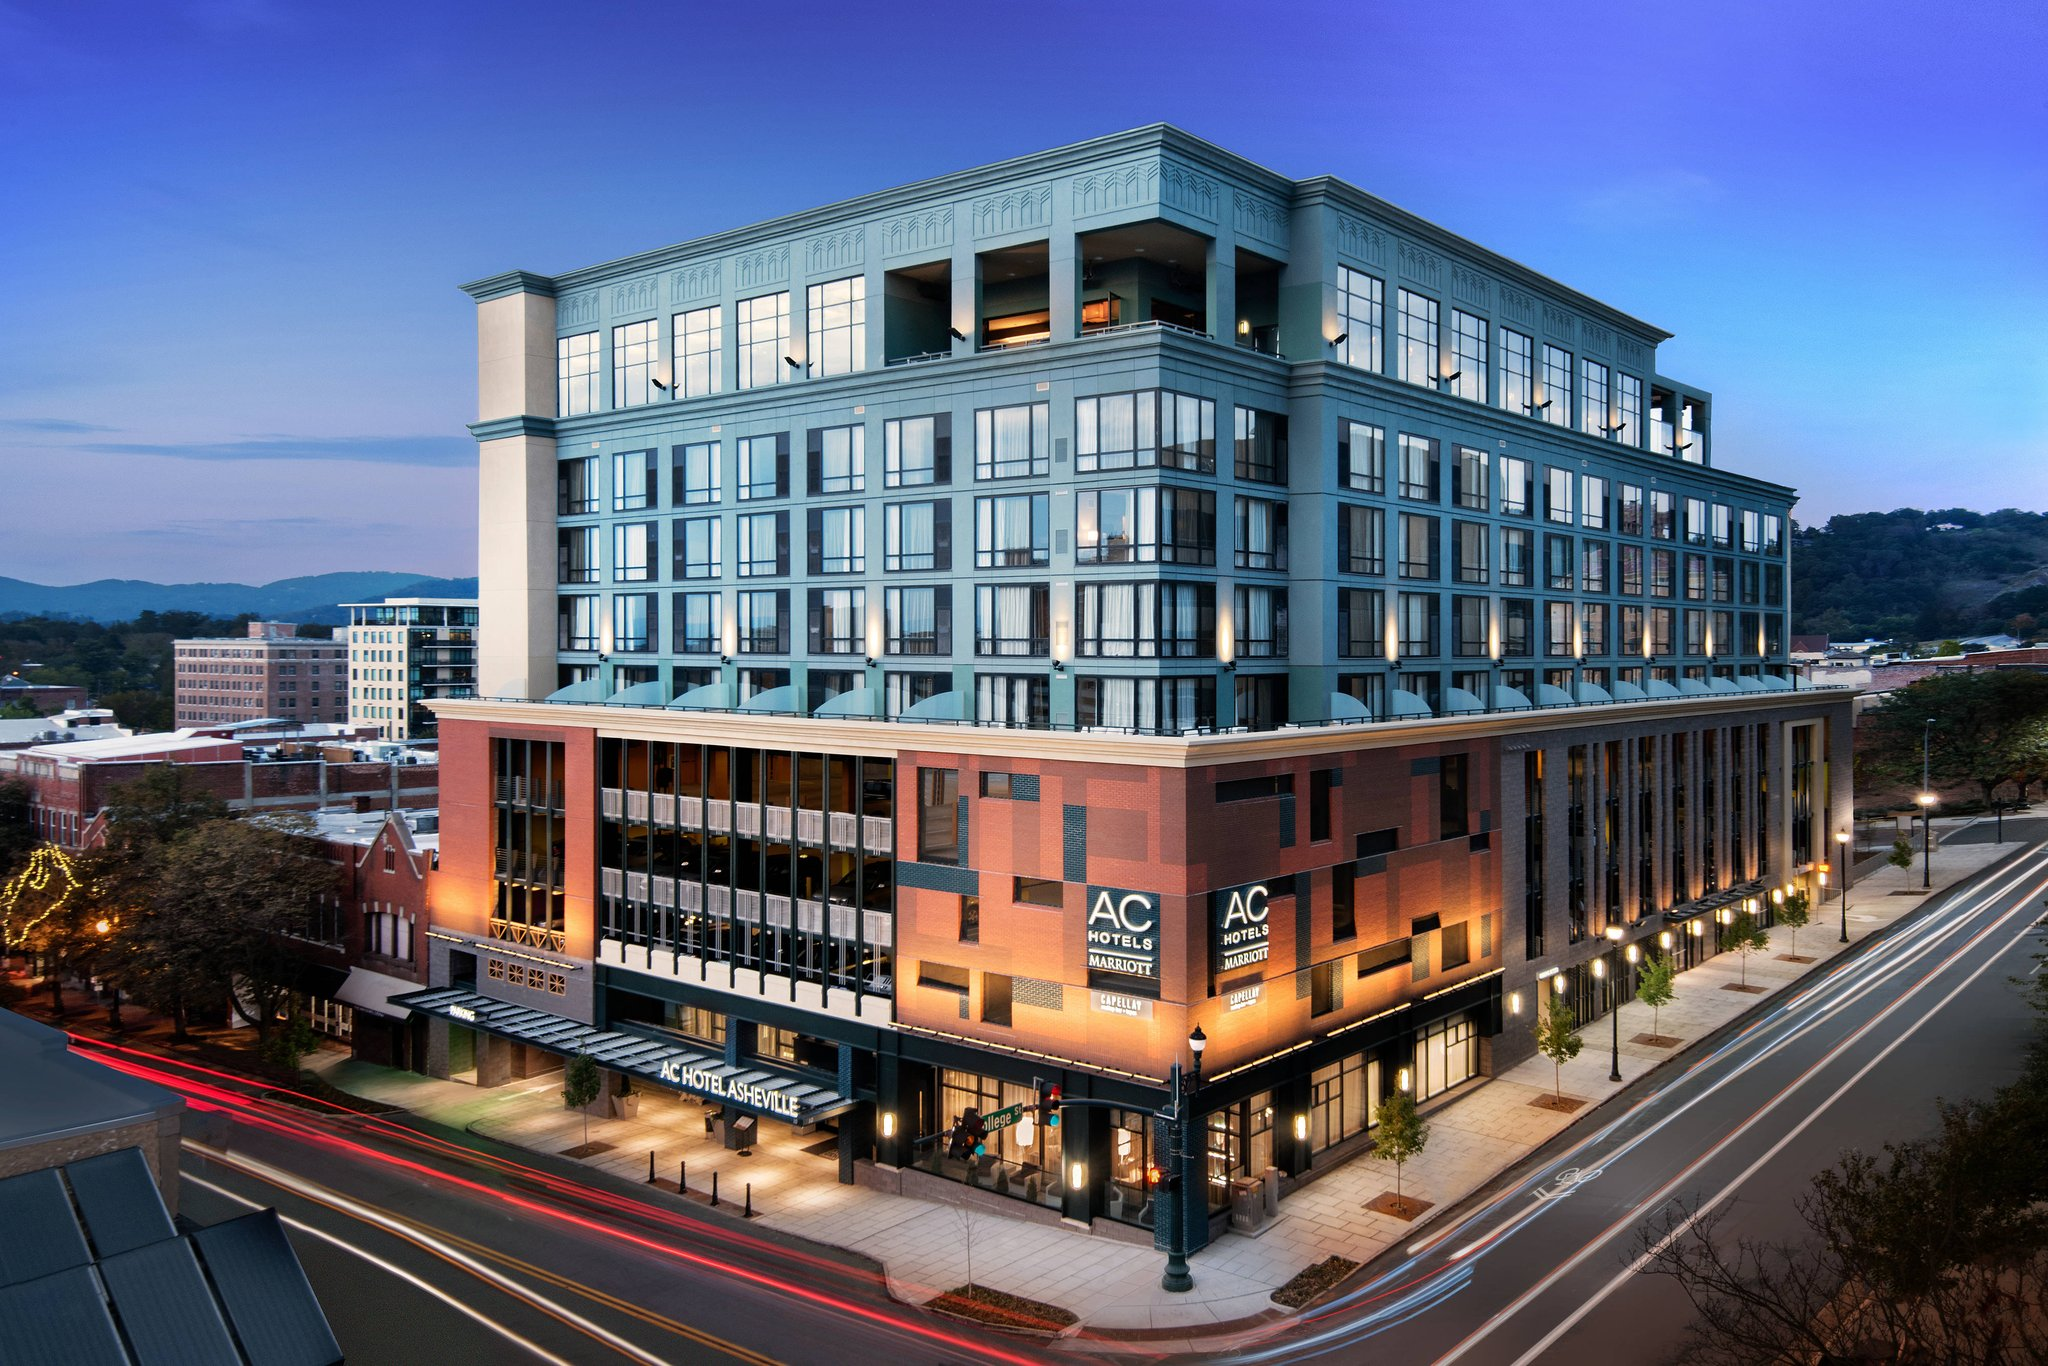 Hotels In Asheville Nc >> Meetings And Events At Ac Hotel Asheville Downtown Asheville Nc Us